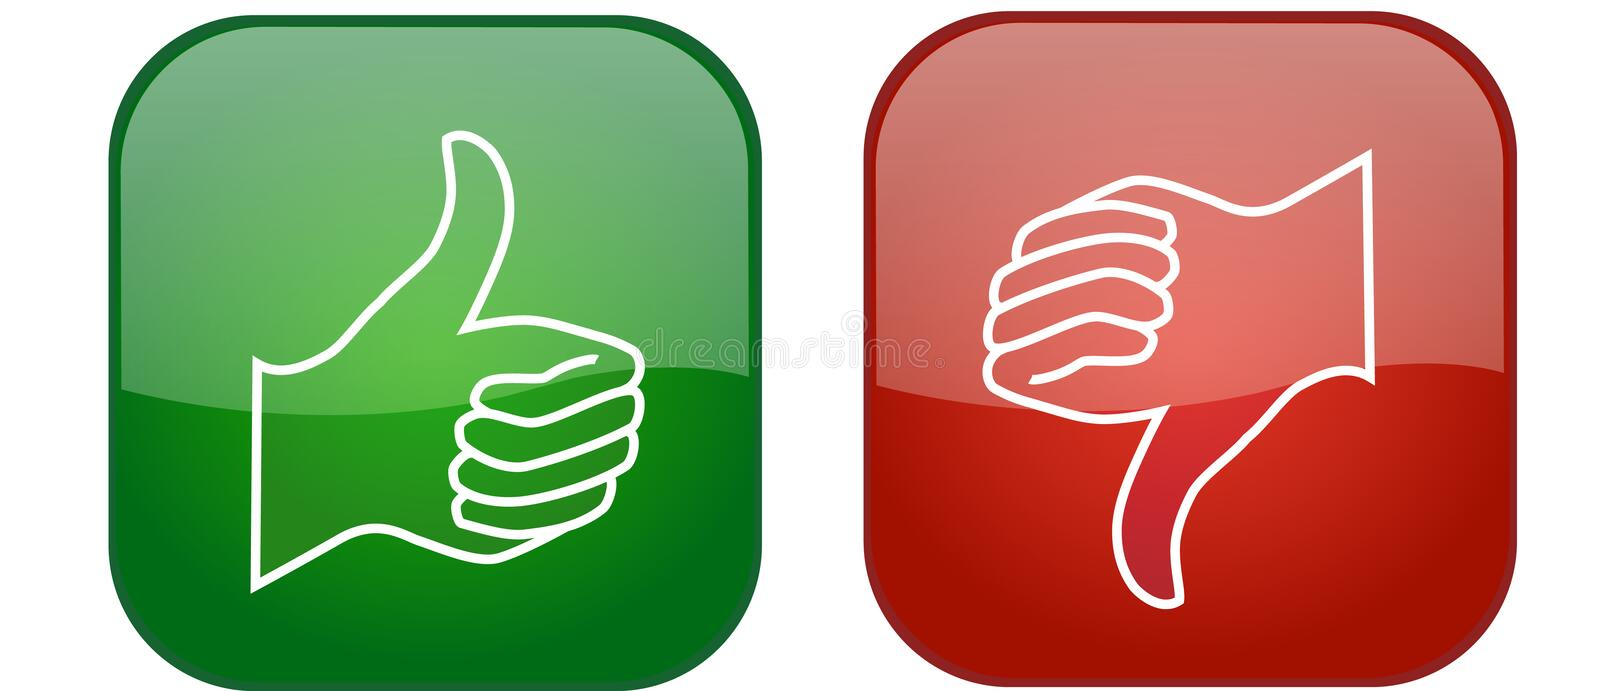 Thumb up and thumb down icons stock illustration